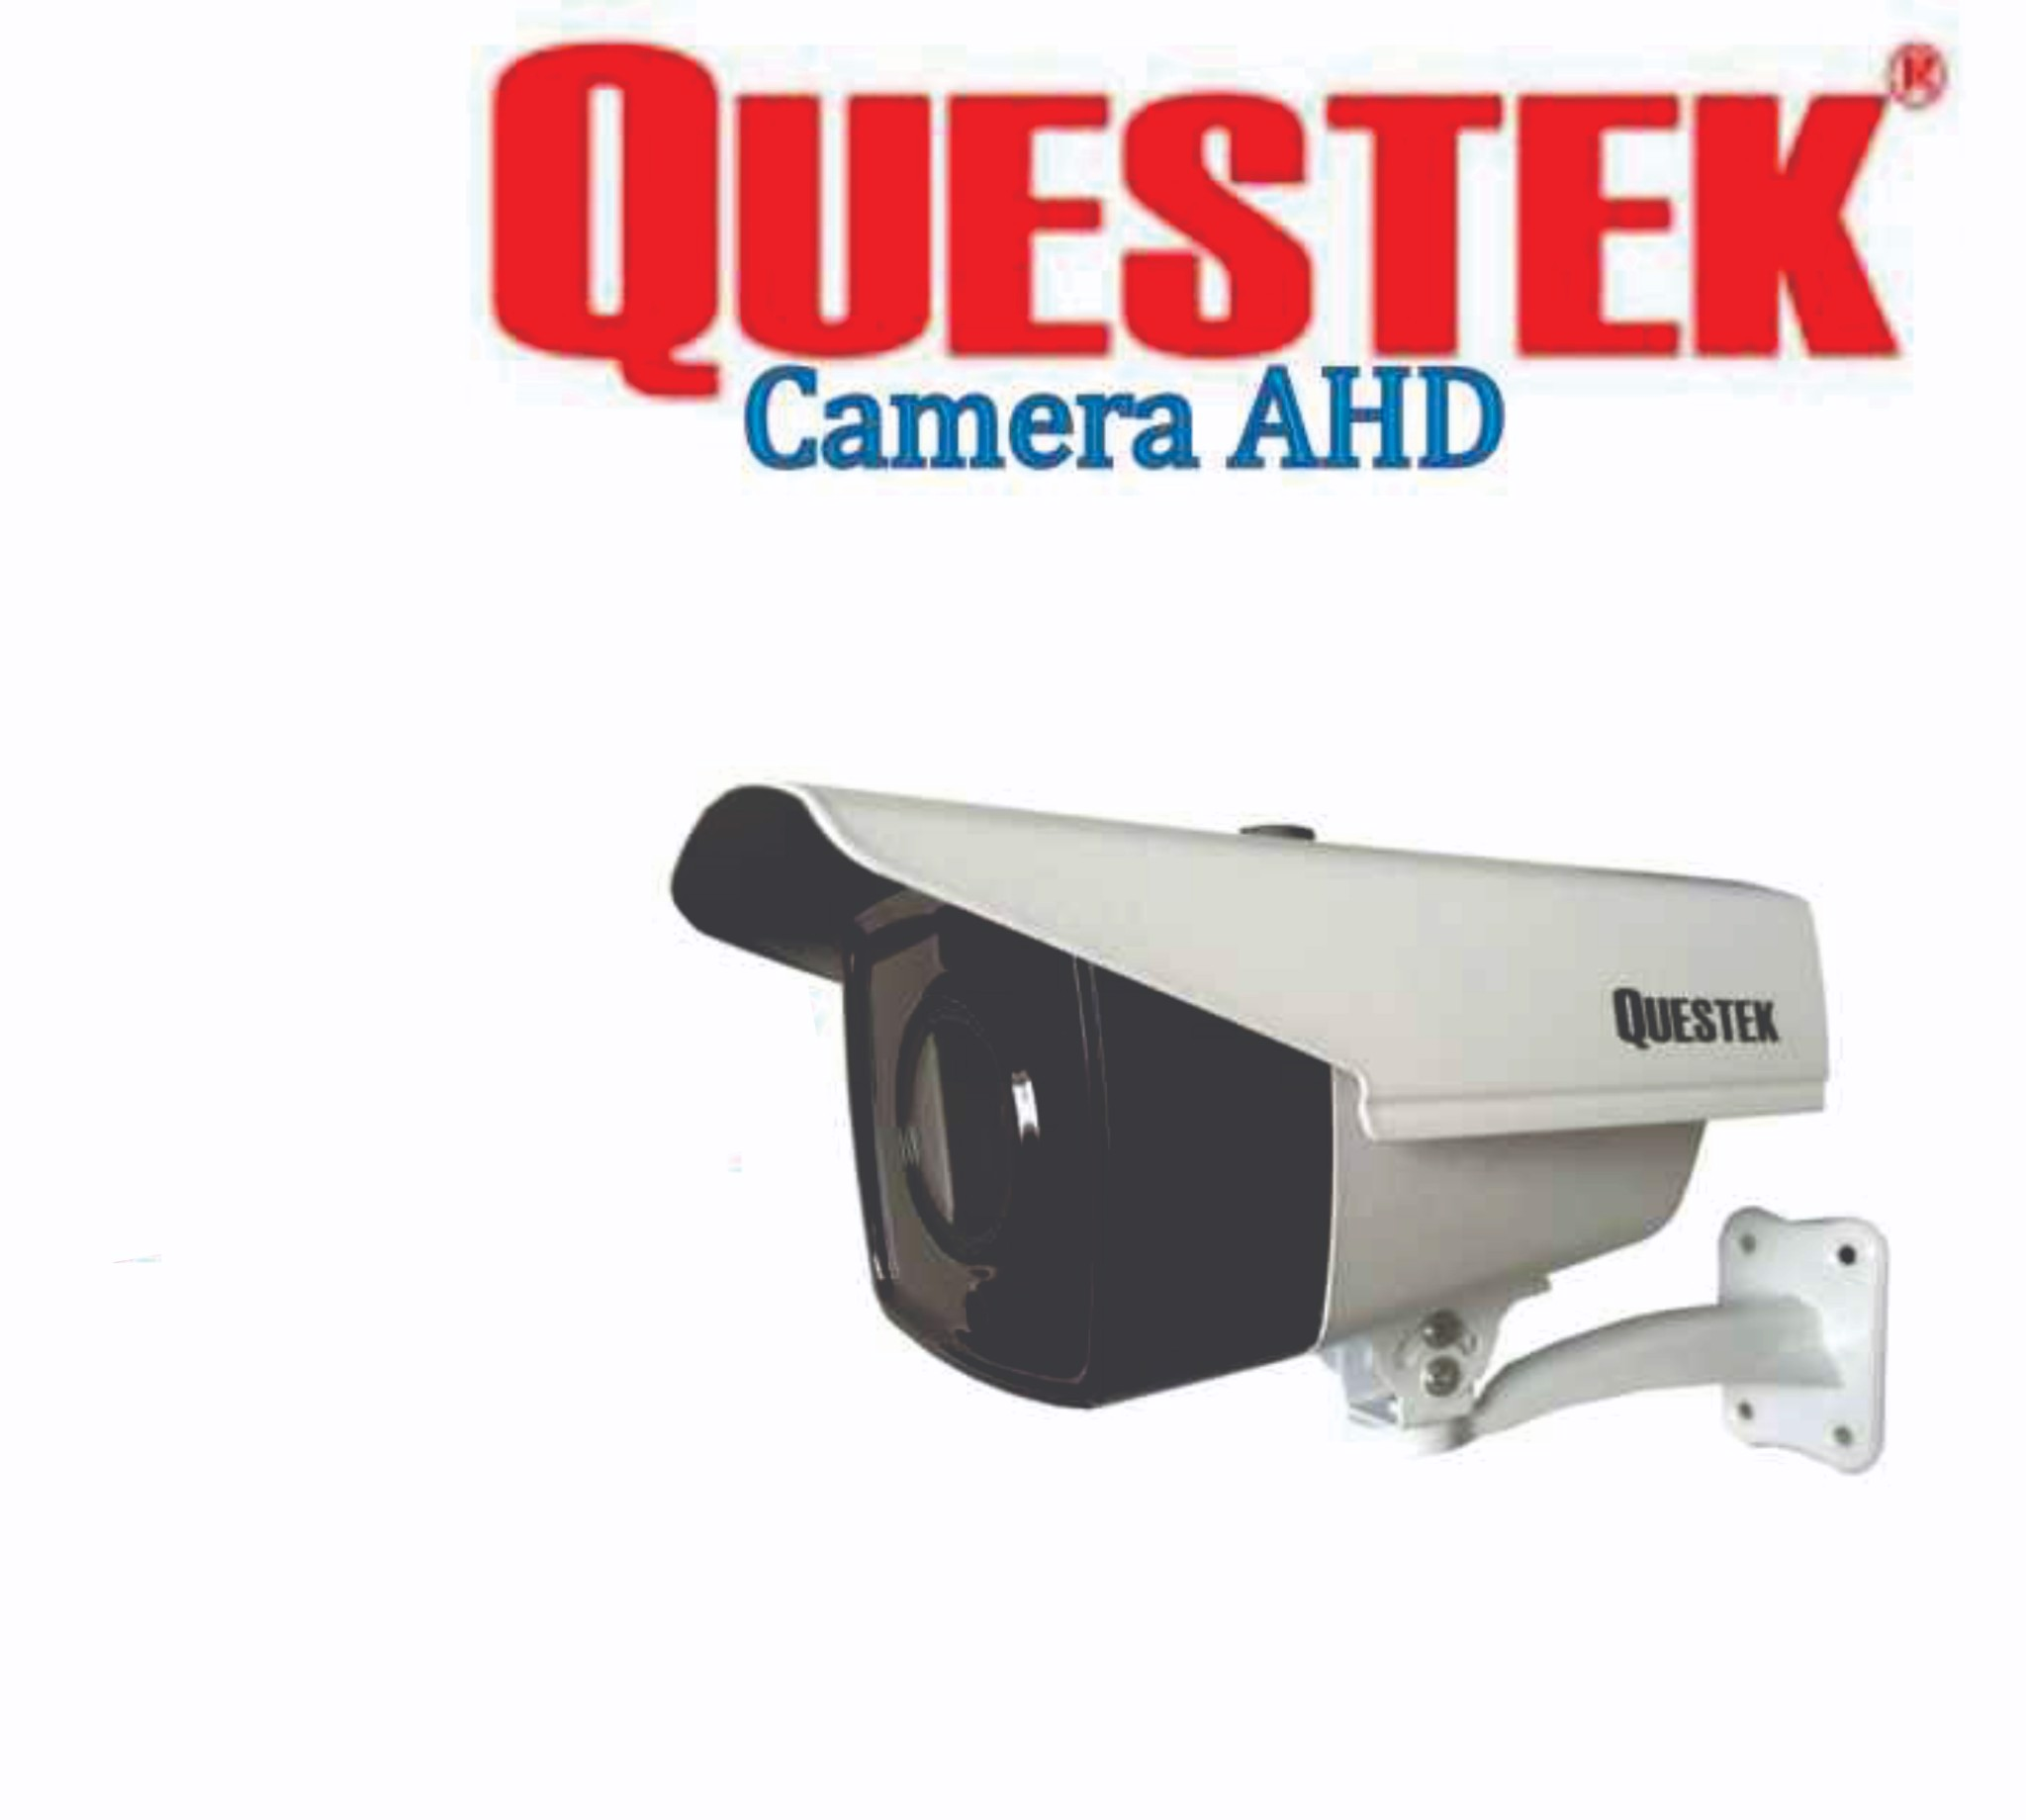 Camera Questek QN-3803AHD/H